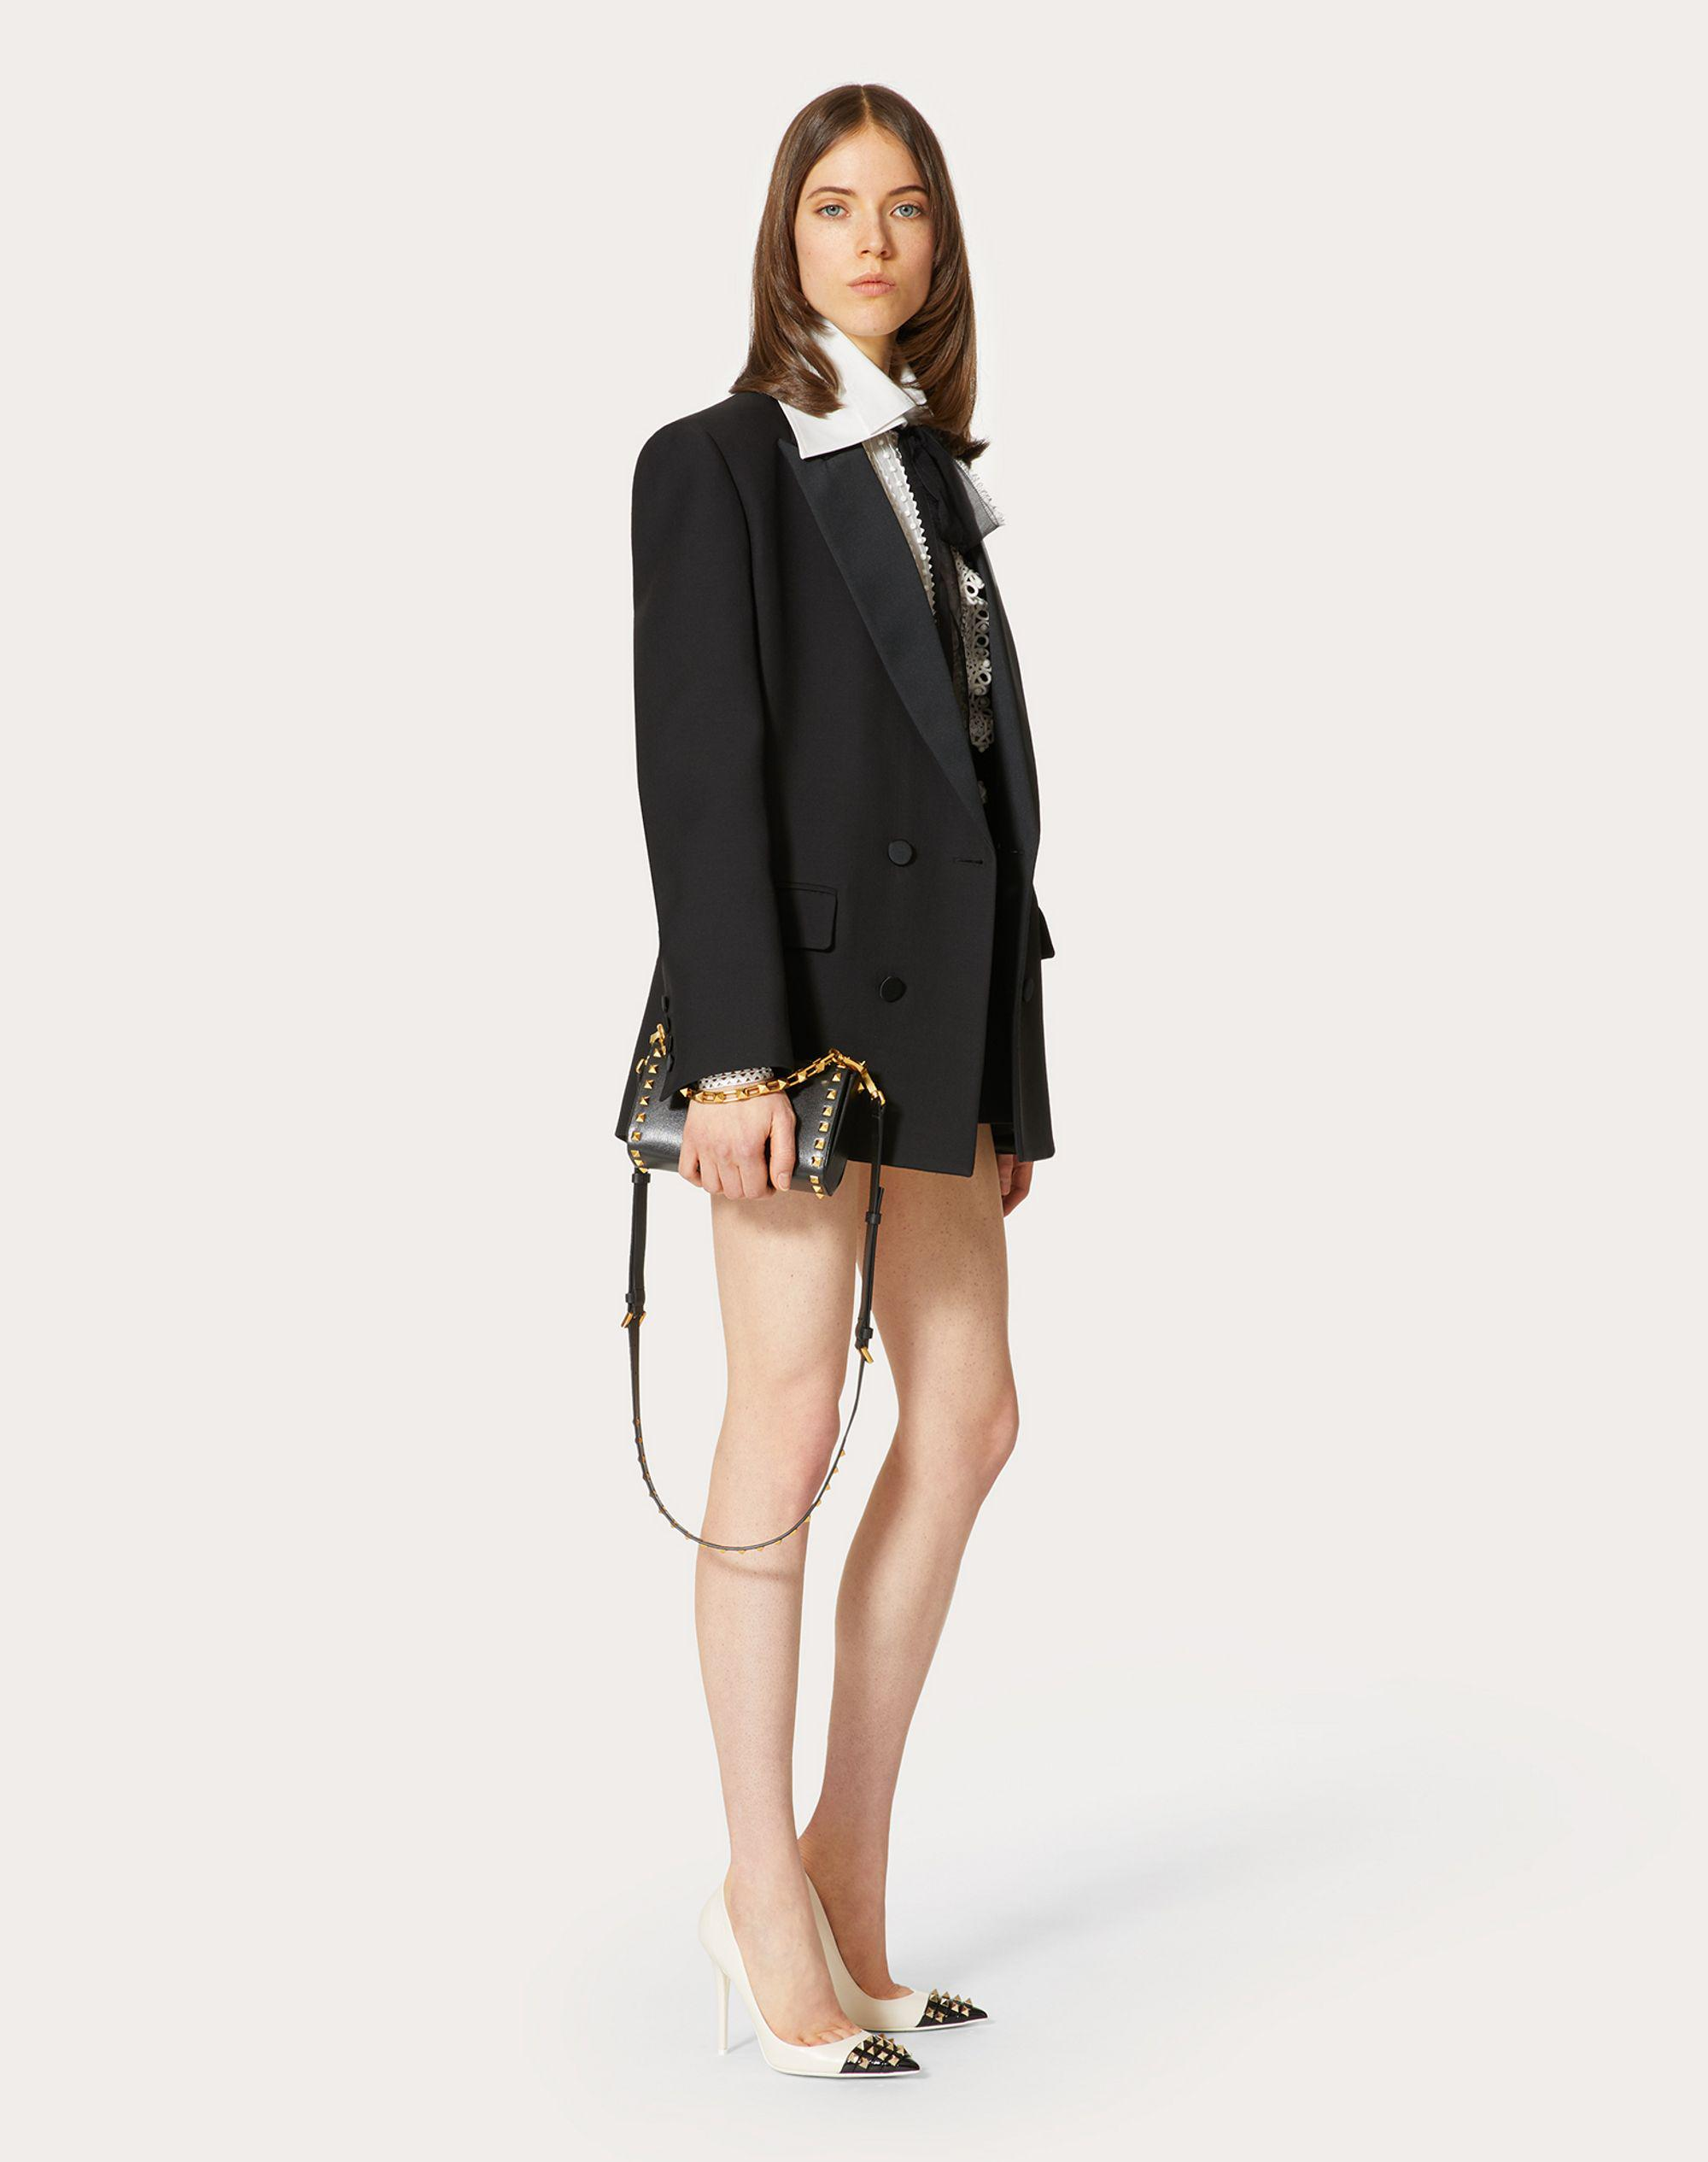 TUXEDO JACKET IN CREPE COUTURE